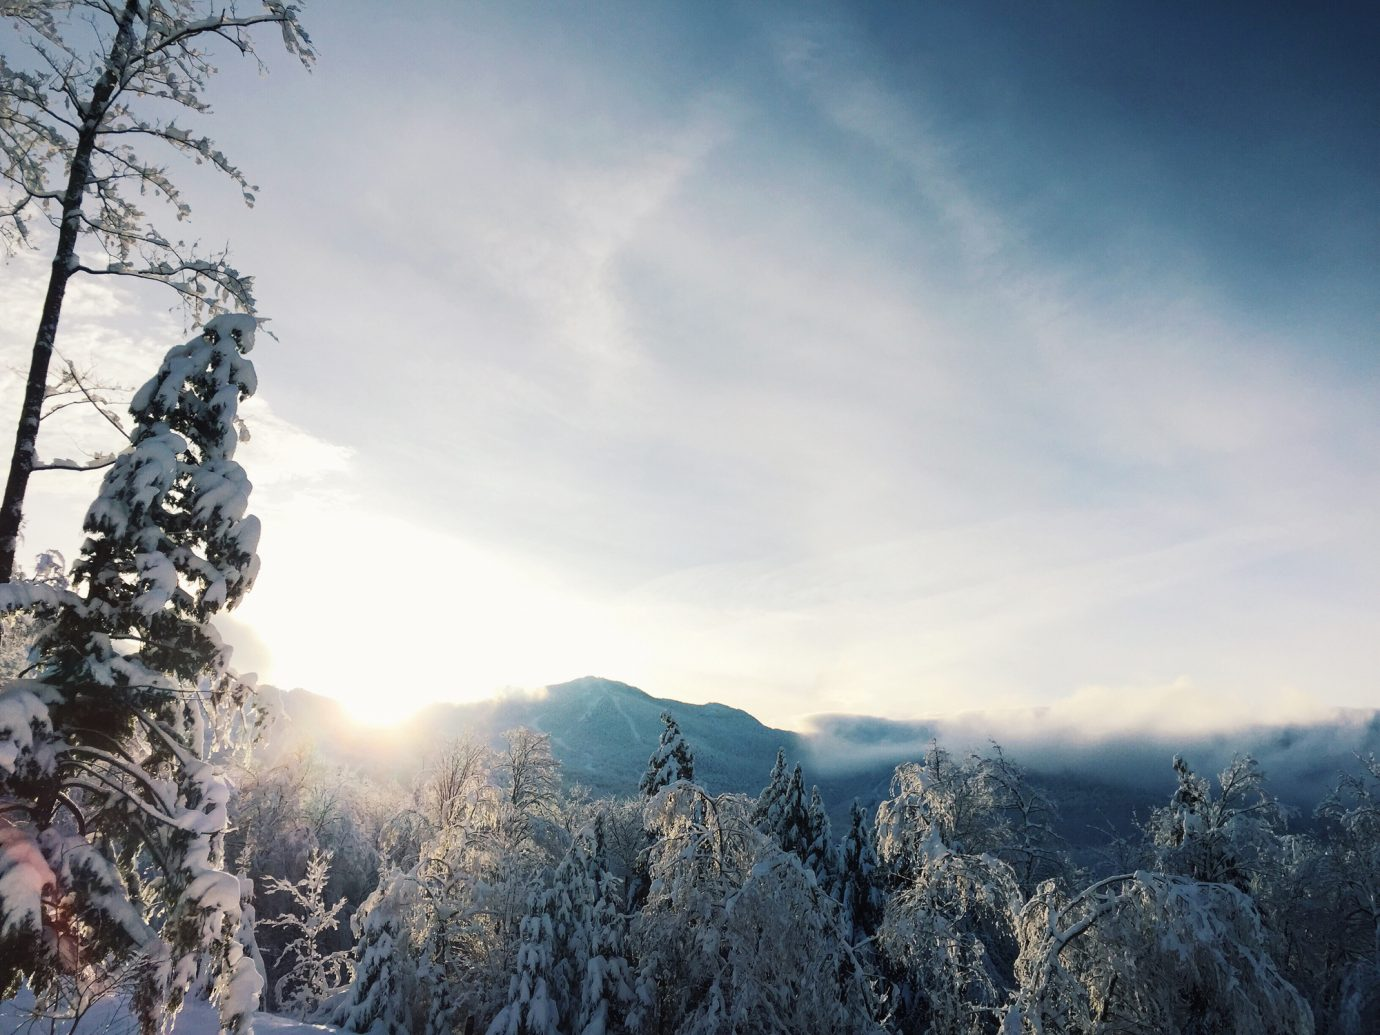 Looking eastward toward the mountains near Smuggler's Notch in Vermont in wintertime. The sun is rising and partially visible as it crests the hills. The trees are covered in hoarfrost.